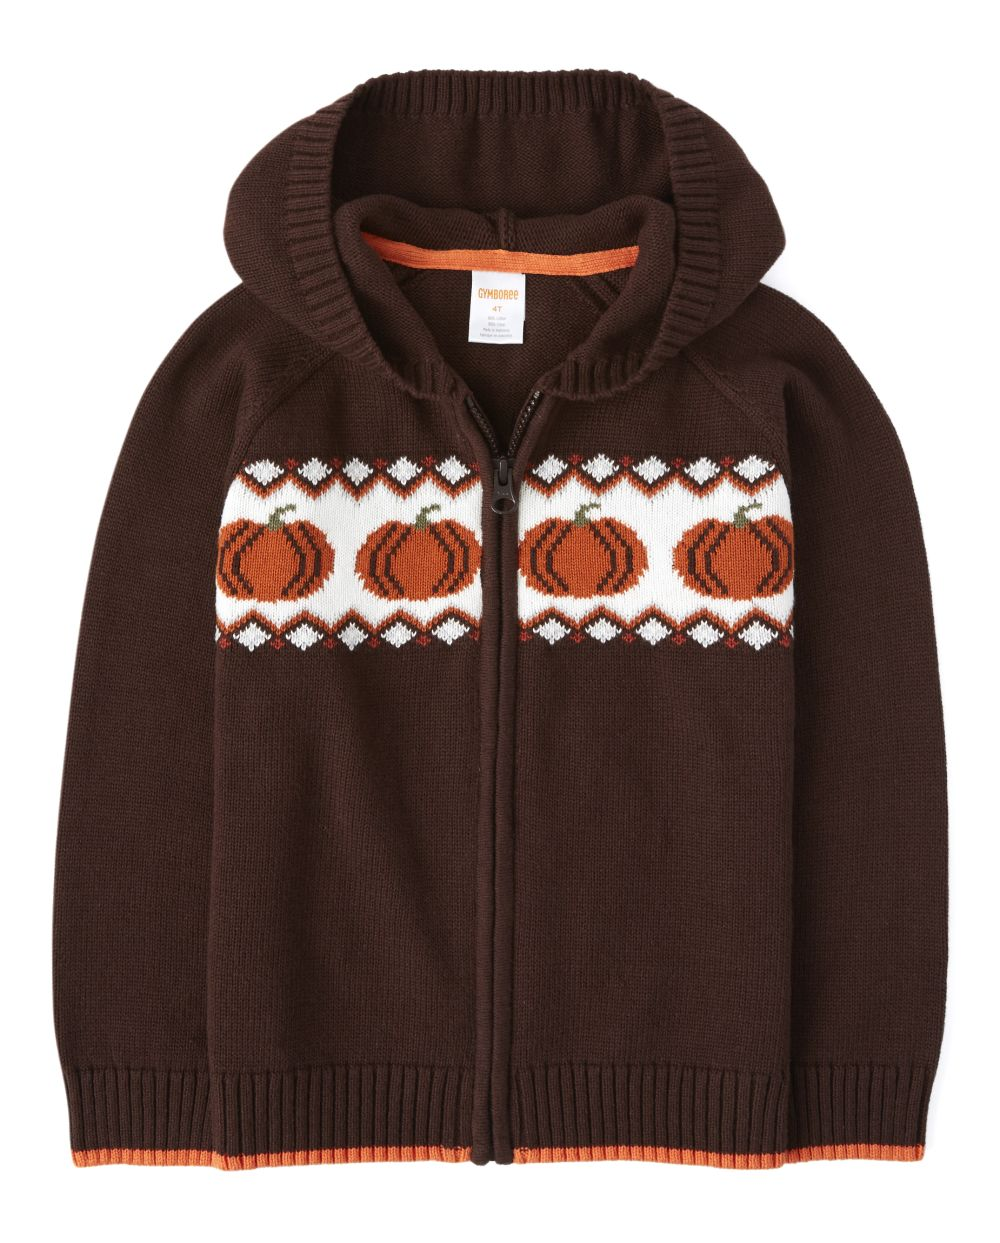 Boys Zip Up Sweater - Harvest